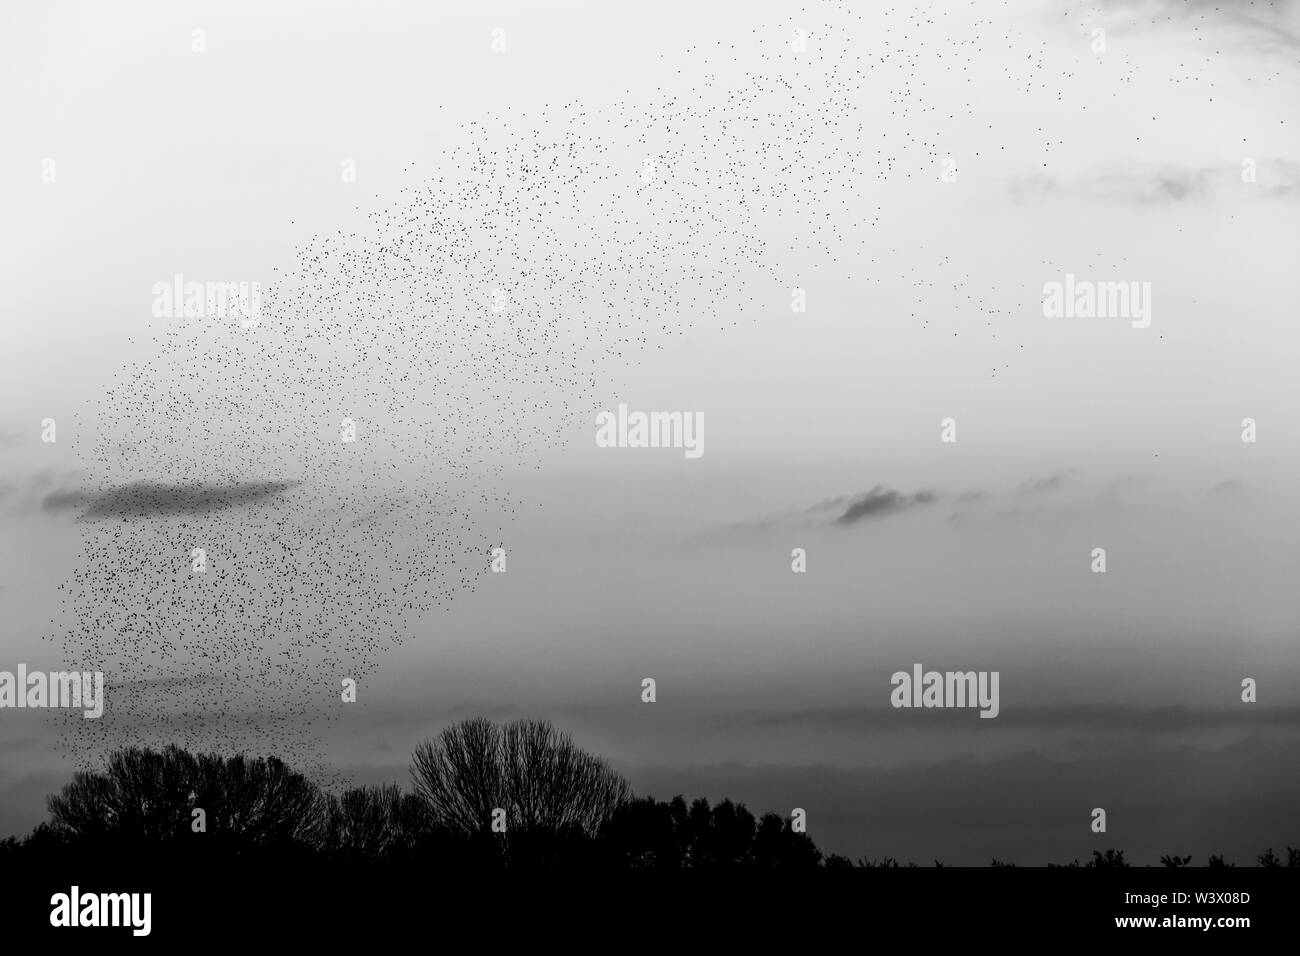 Flock of birds making a beautiful shape in the sky above some trees. - Stock Image